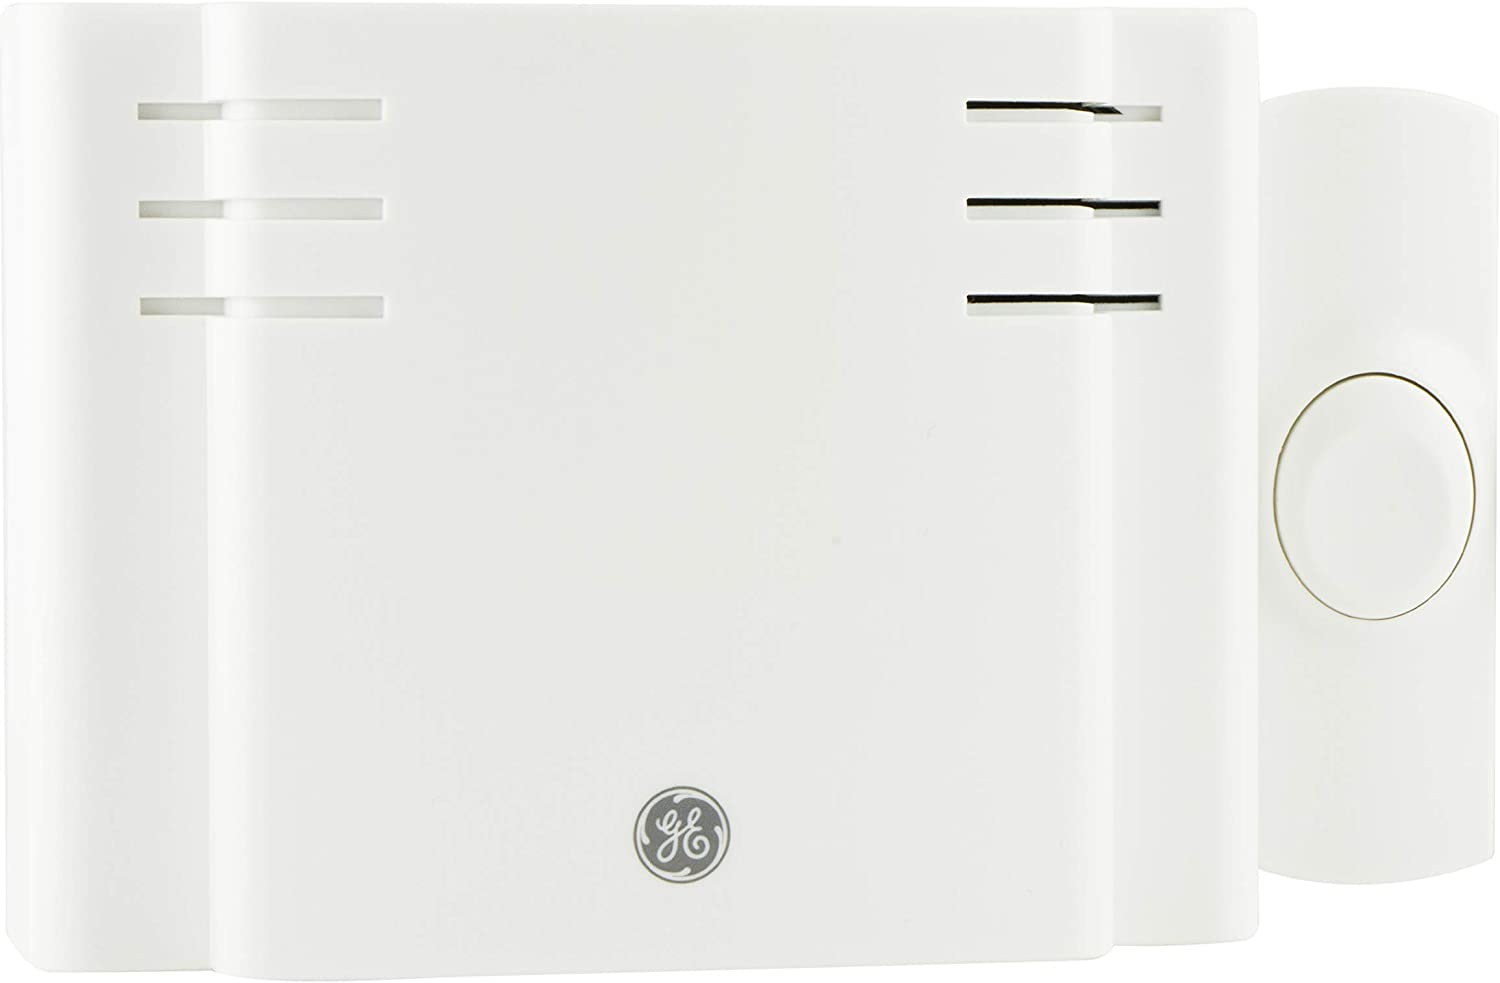 GE Wireless Doorbell Kit, Battery-Operated, 8 Melodies, 1 Receiver, 1 Push Button, 4 Volume Levels, 150 Ft. Range, Mountable, White, 19248